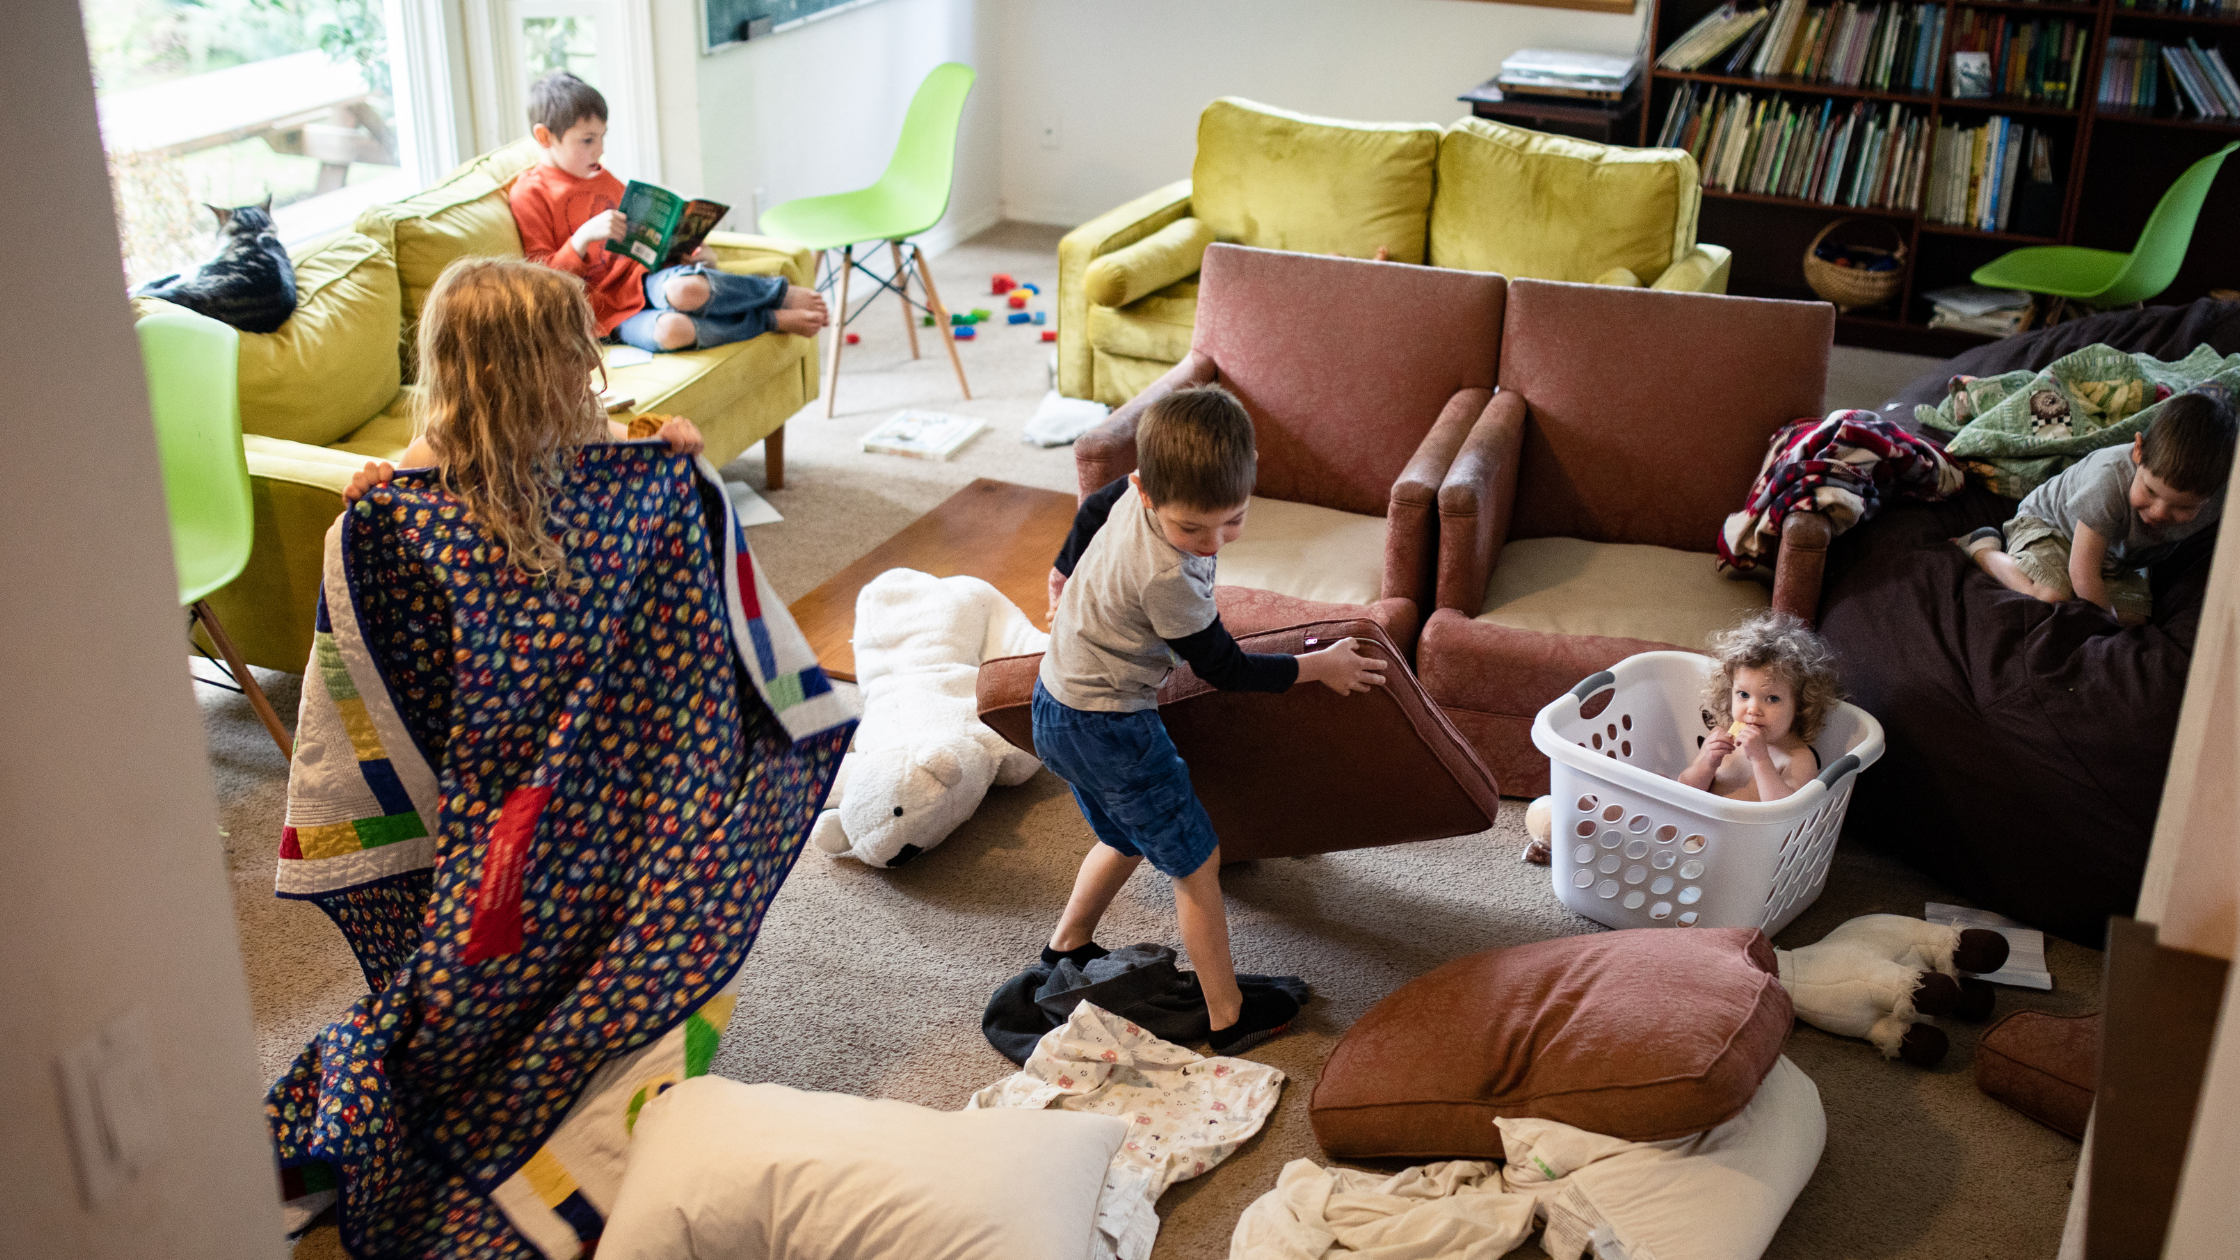 You are currently viewing How to Have a Clean House: A Mom's Guide to Peace With Your Home